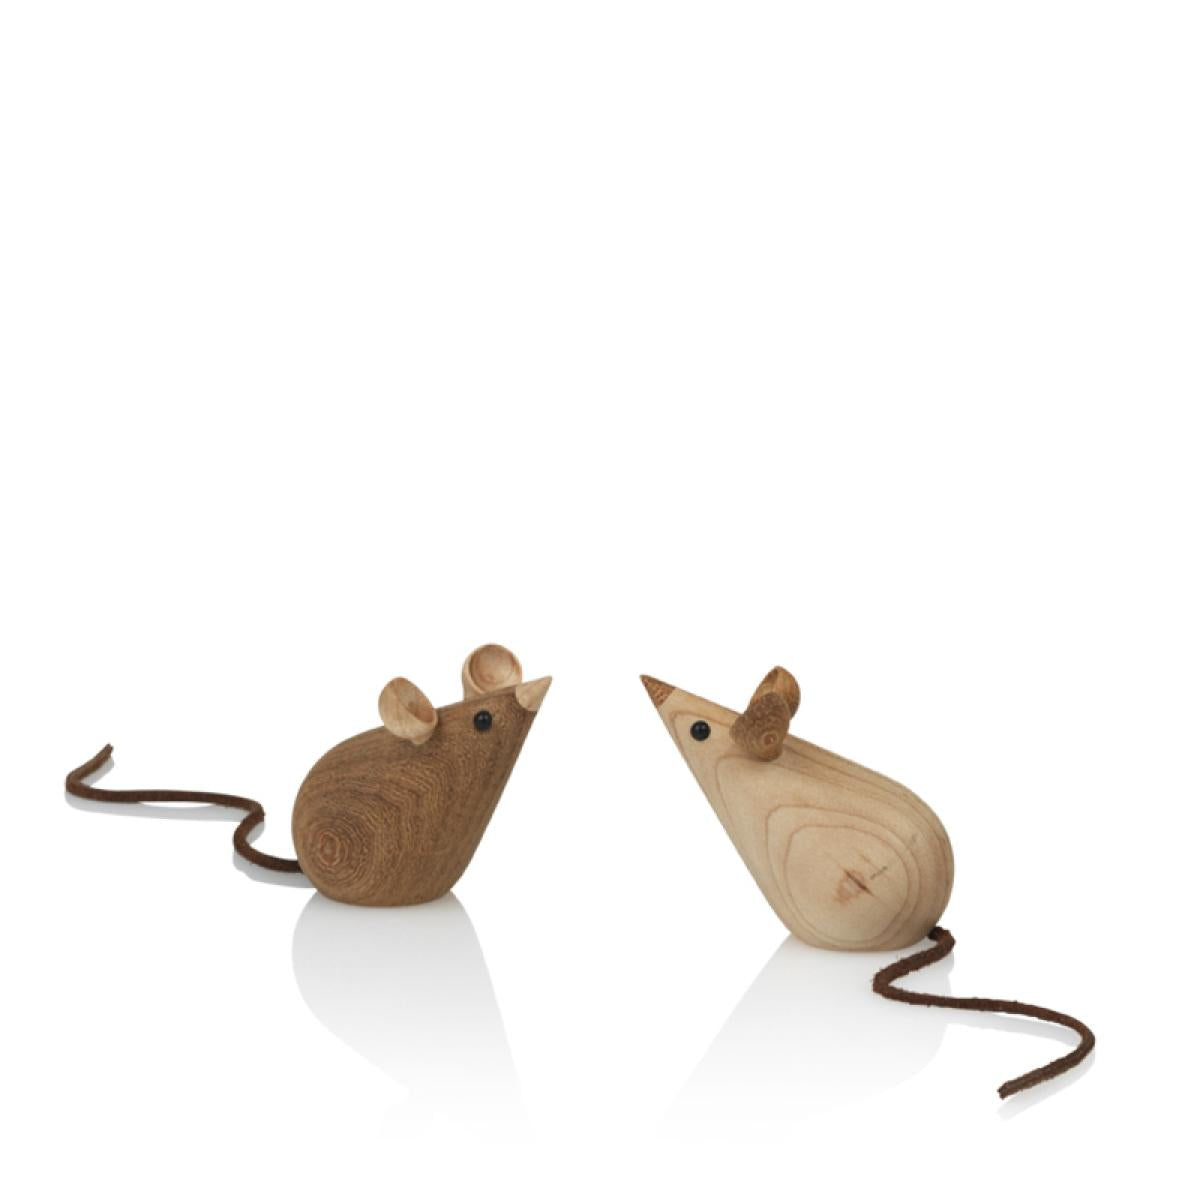 Skjode Mice (set of two) for Lucie Kaas